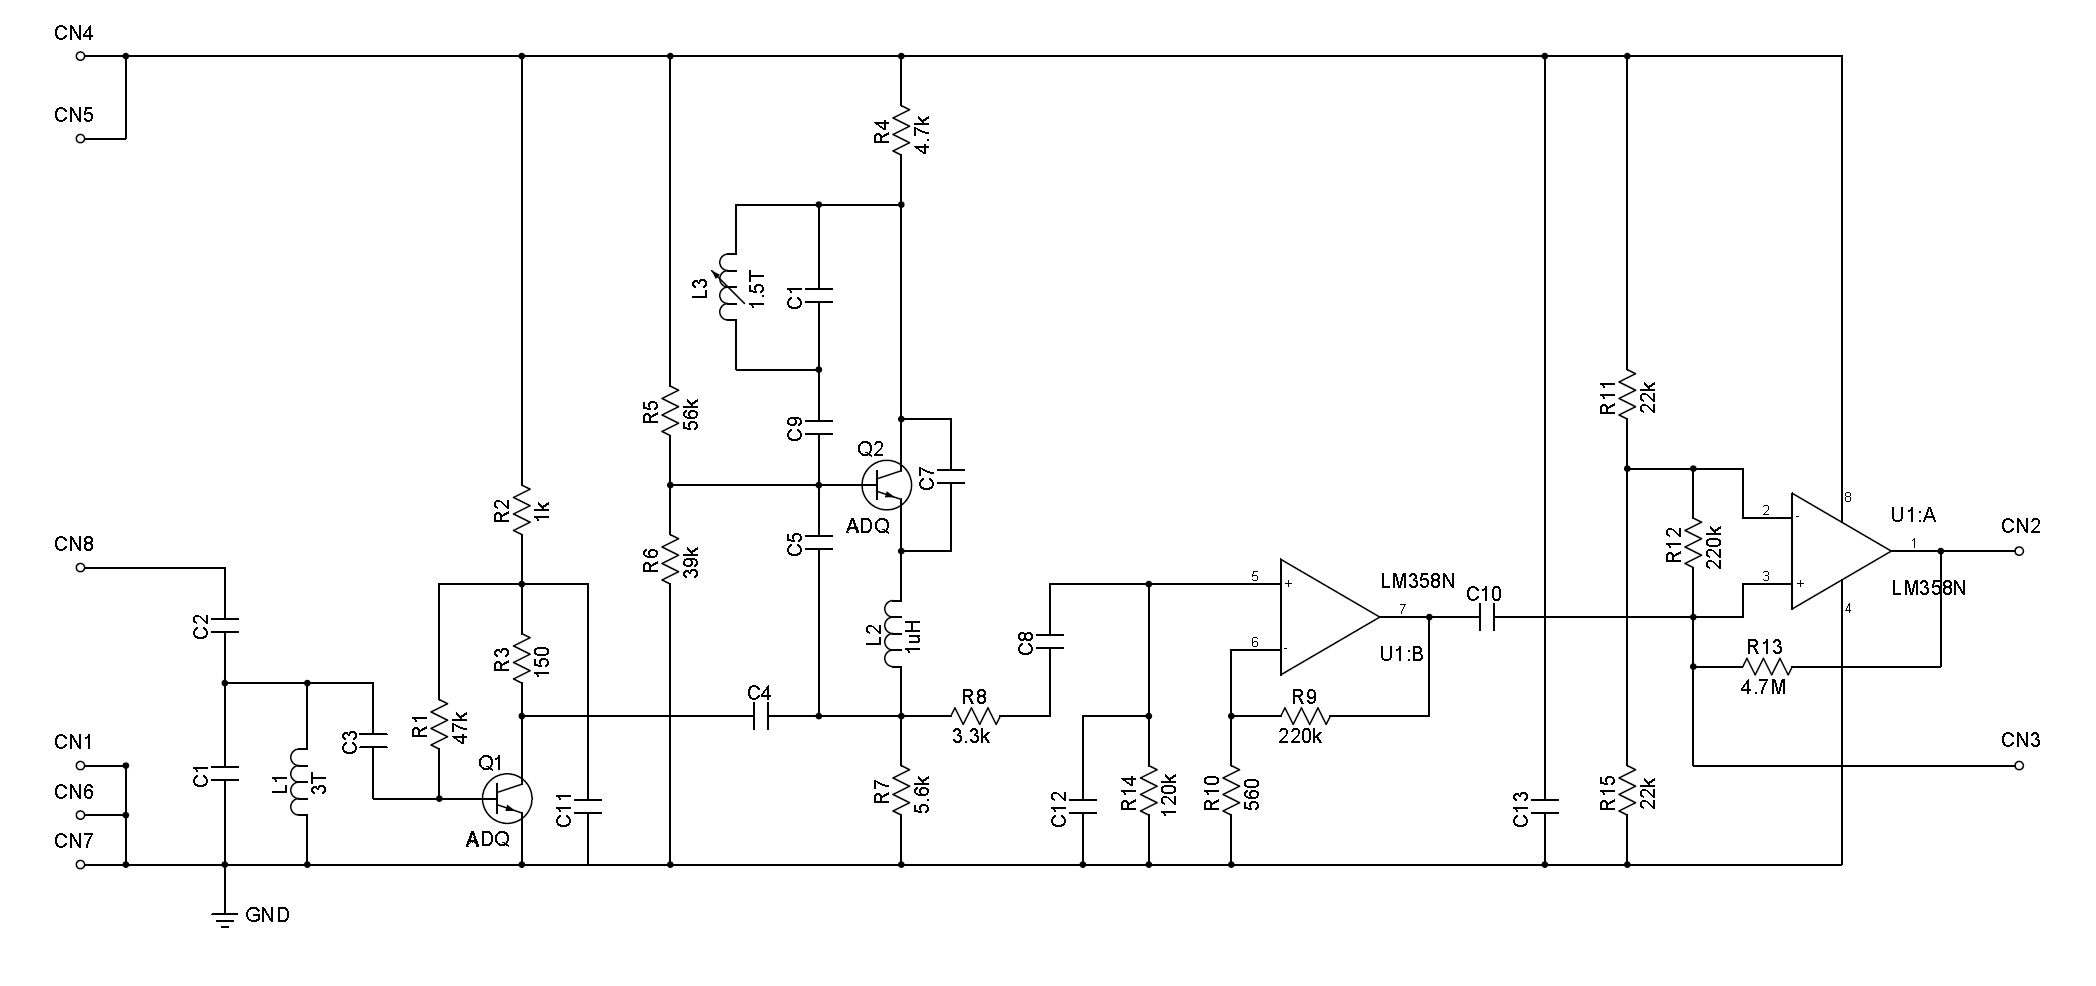 Ir And Rf Remote Controls Mbed Simple Crystal Radio Schematic Free Image About Wiring Diagram Rfrec